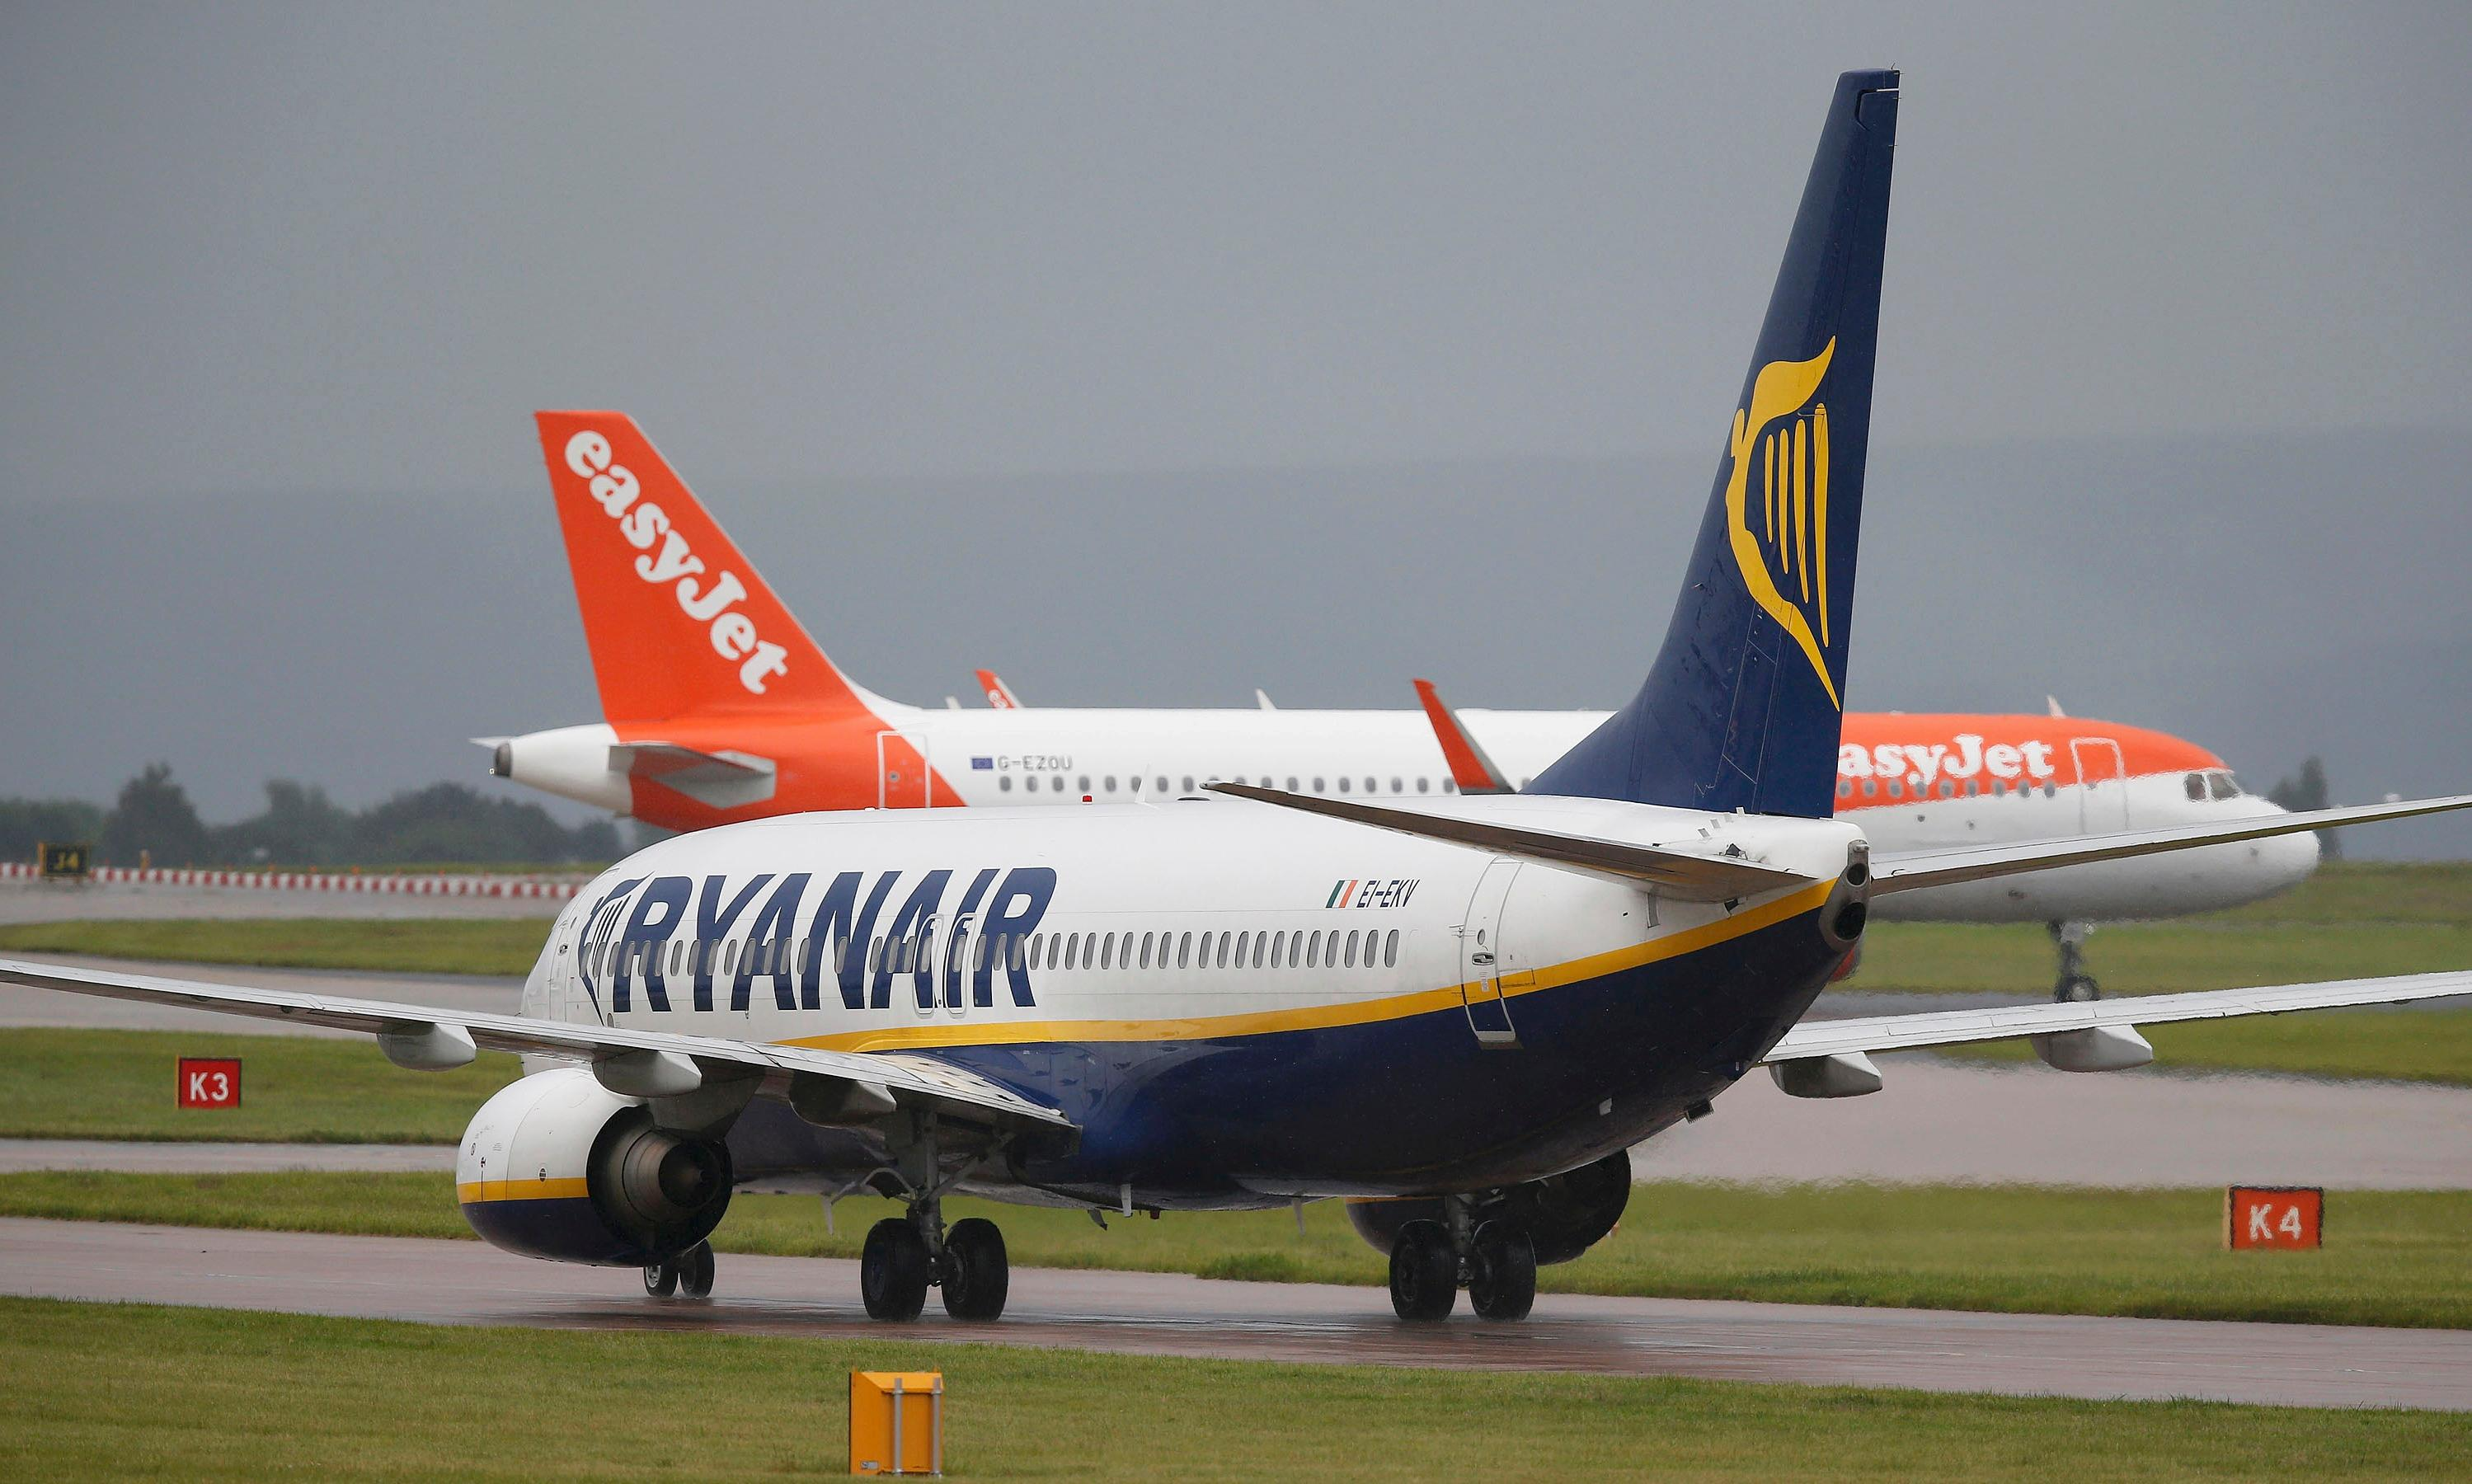 Manchester airport flights delayed after refuelling power failure